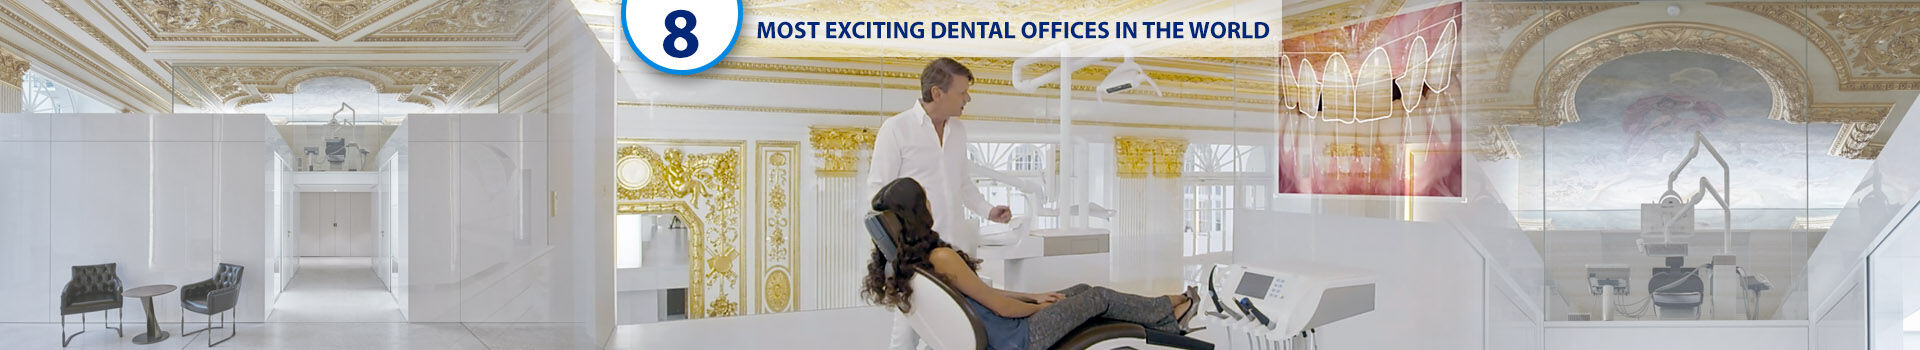 The 7+1 most exciting dental offices in the world